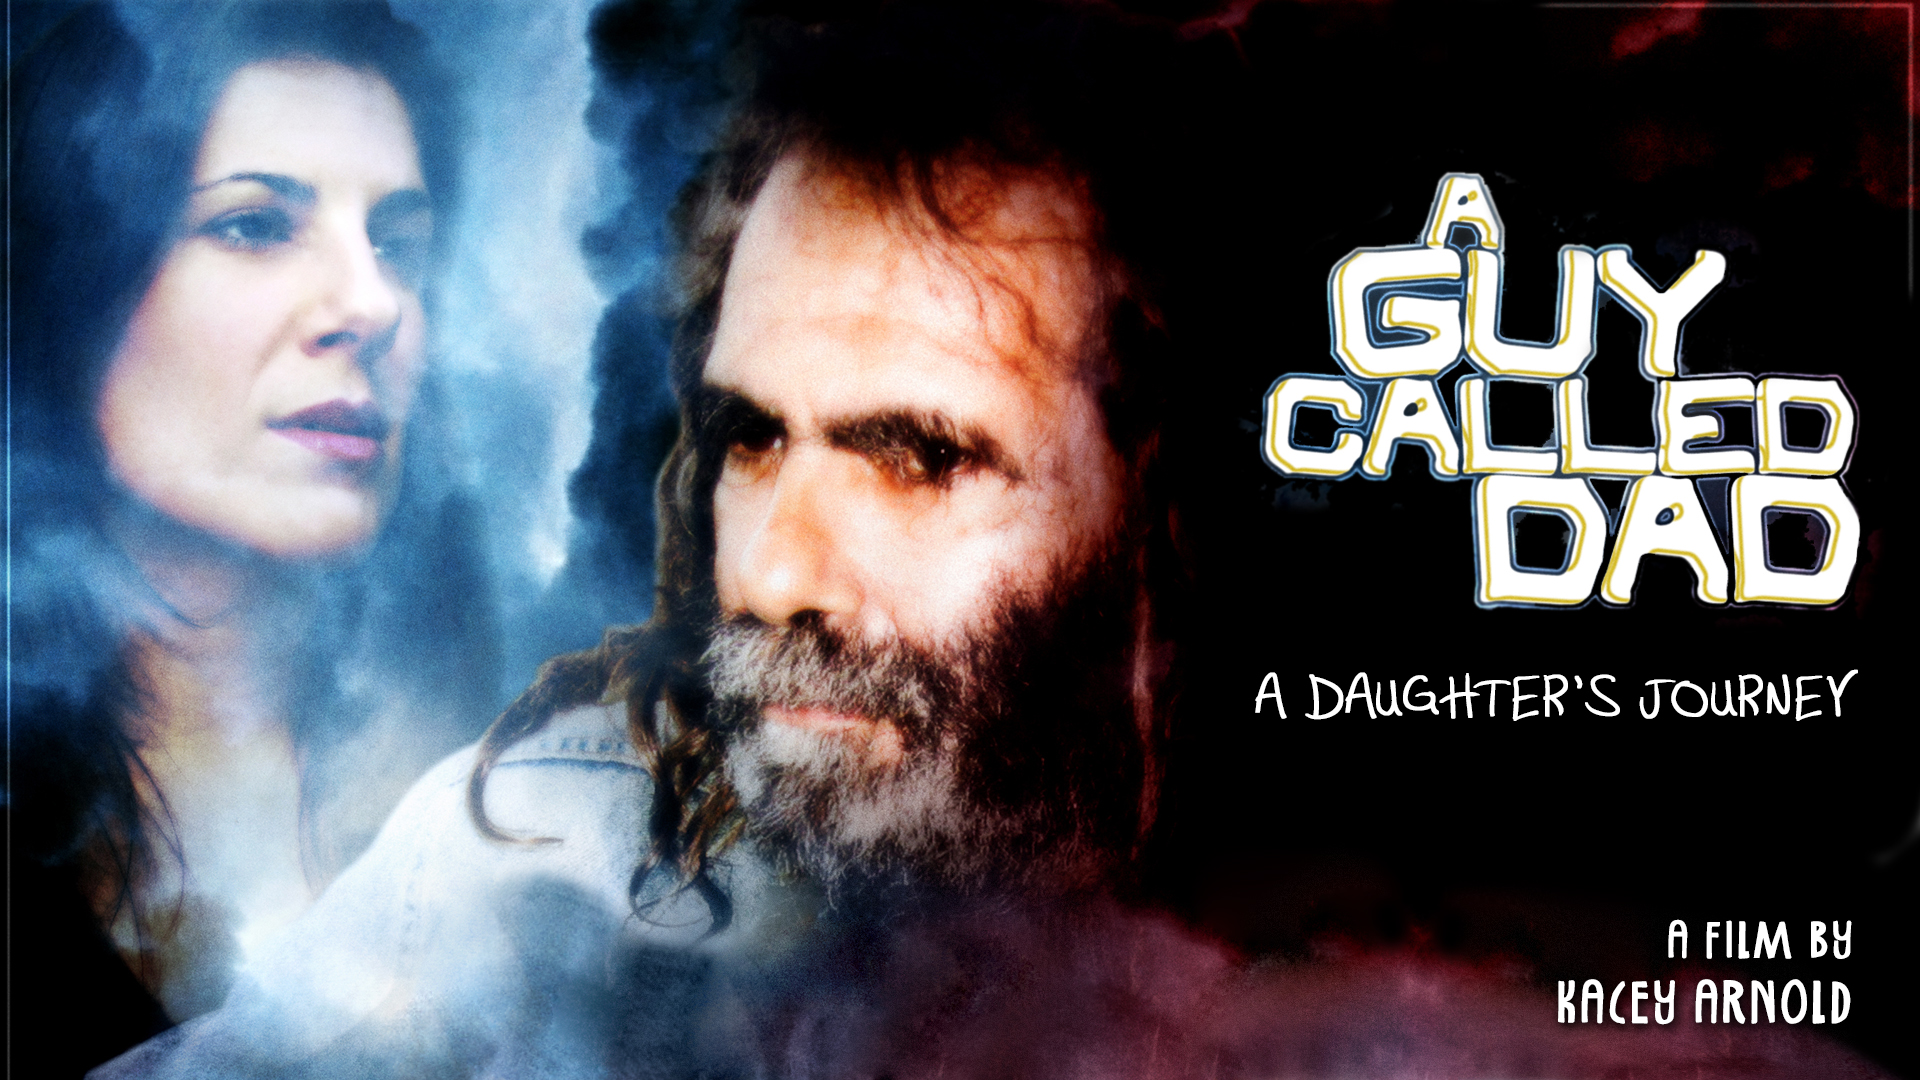 A Guy Called Dad: A Daughter's Journey